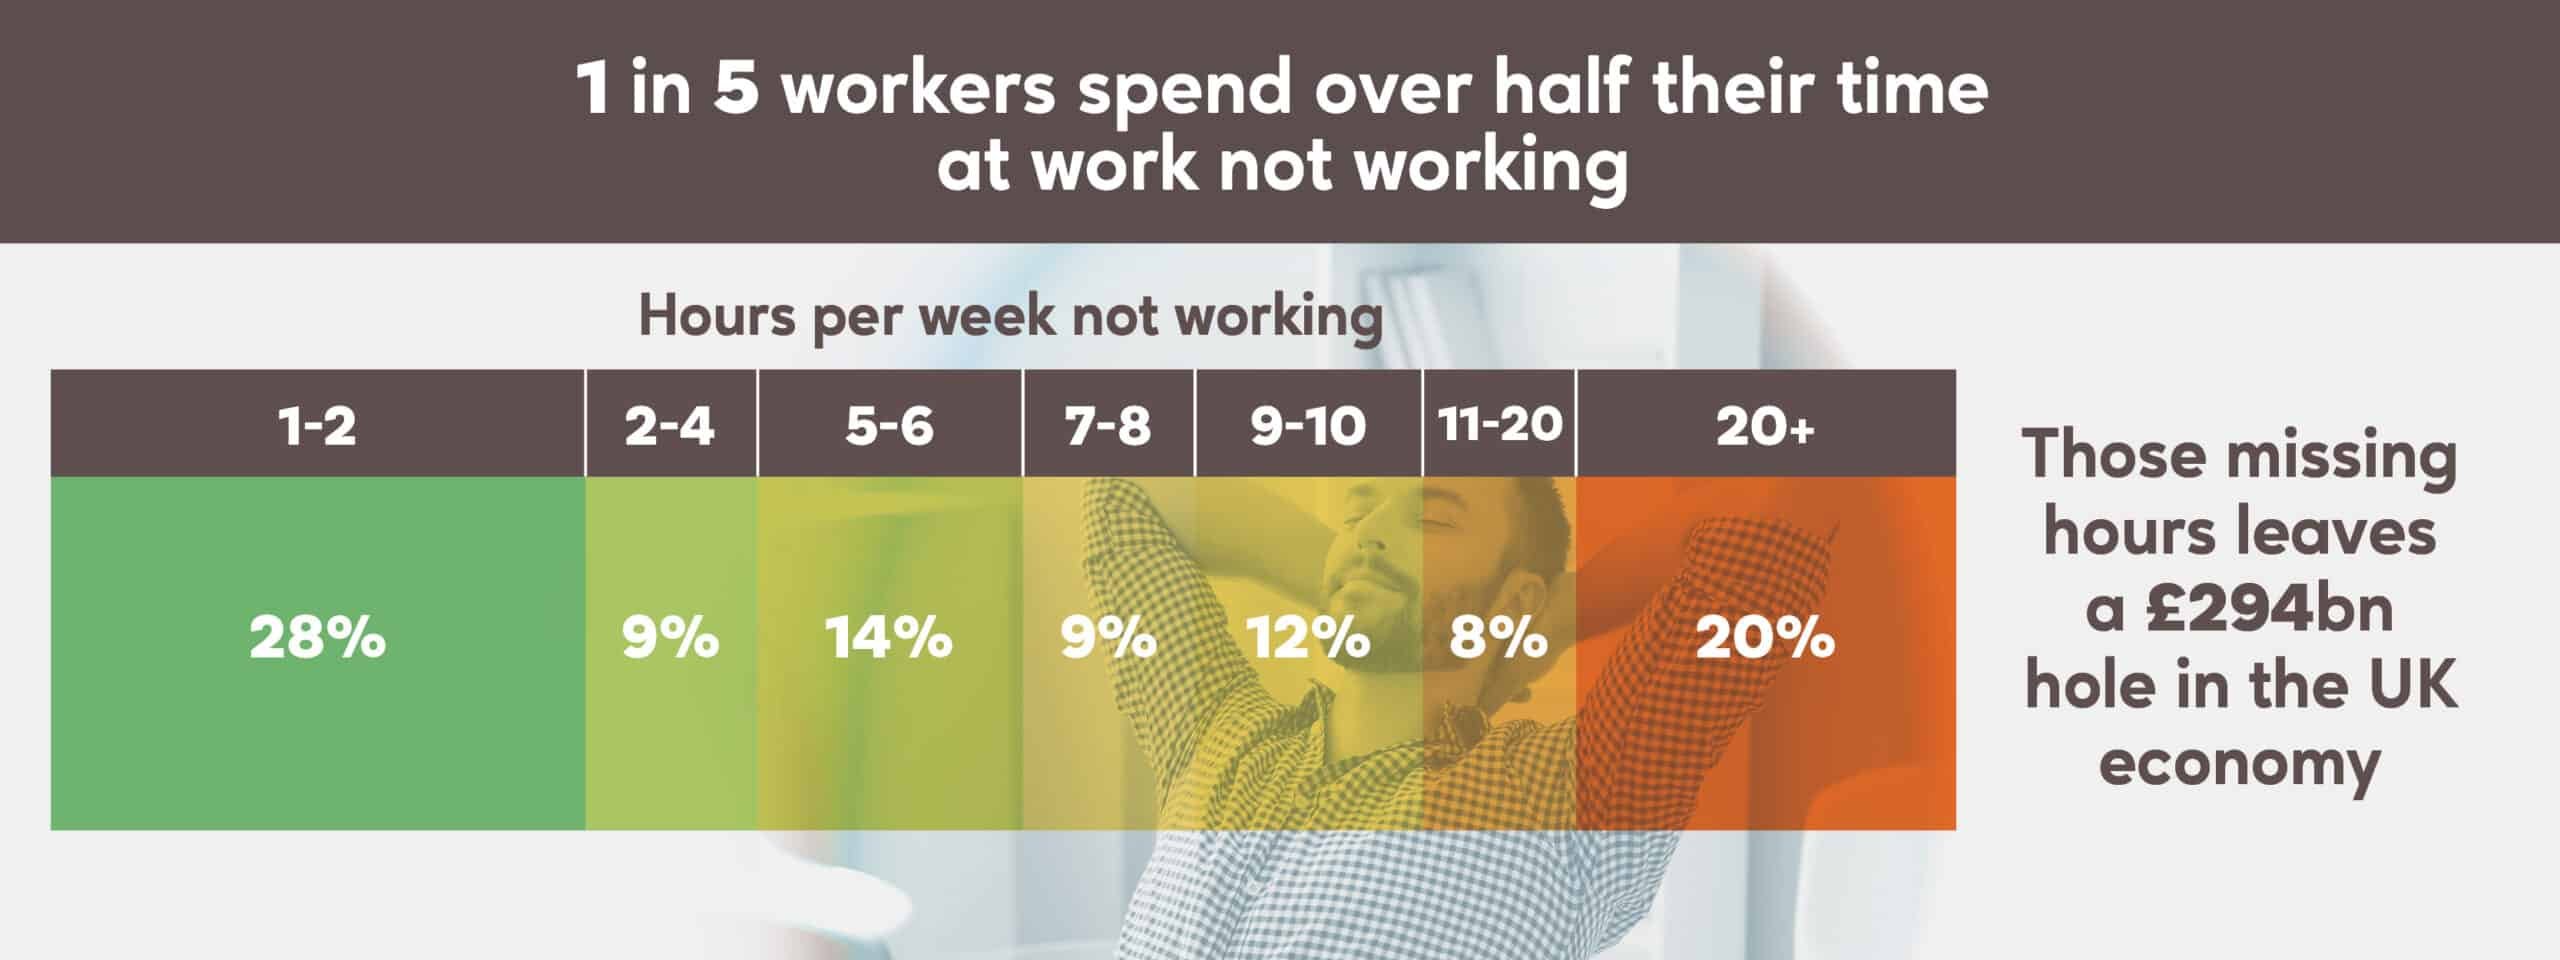 1 in 5 Workers Spend Over Half Their Time Not Working